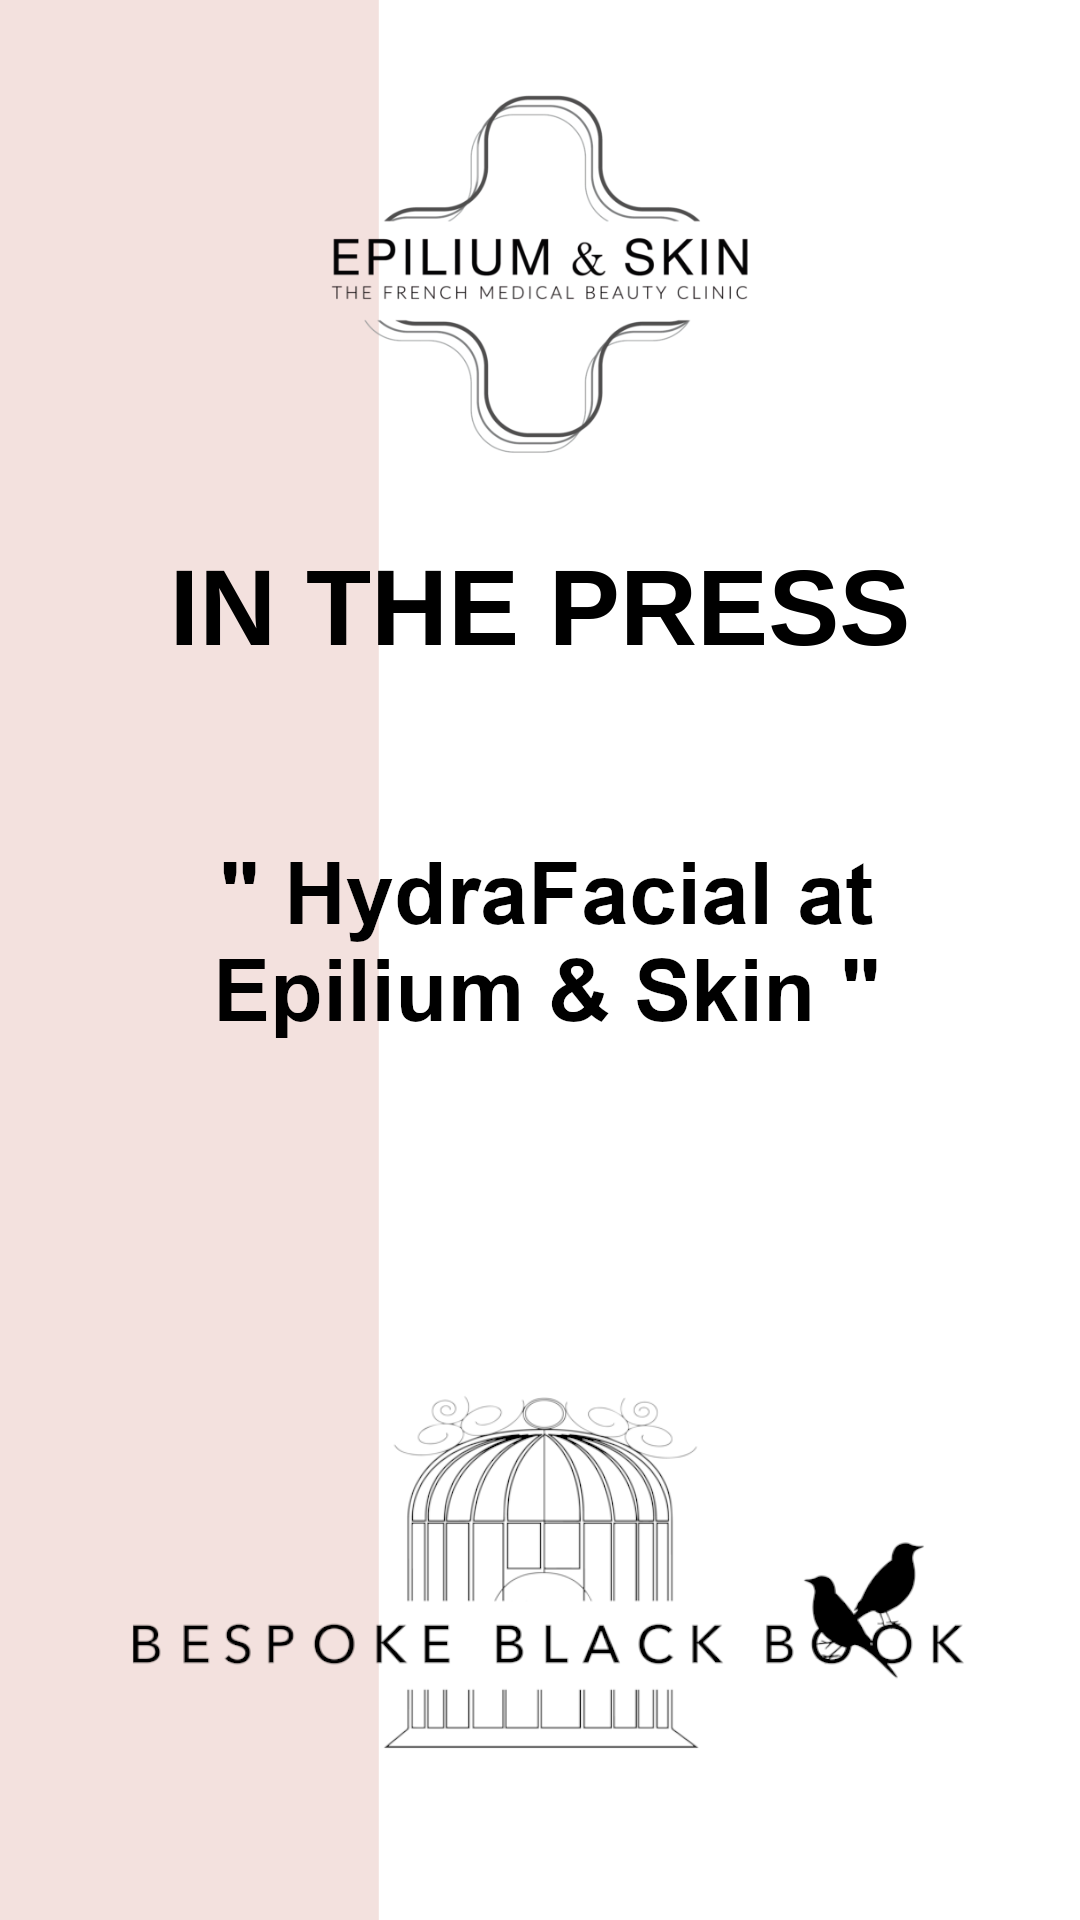 HydraFacial at Epilium & Skin dec 2019